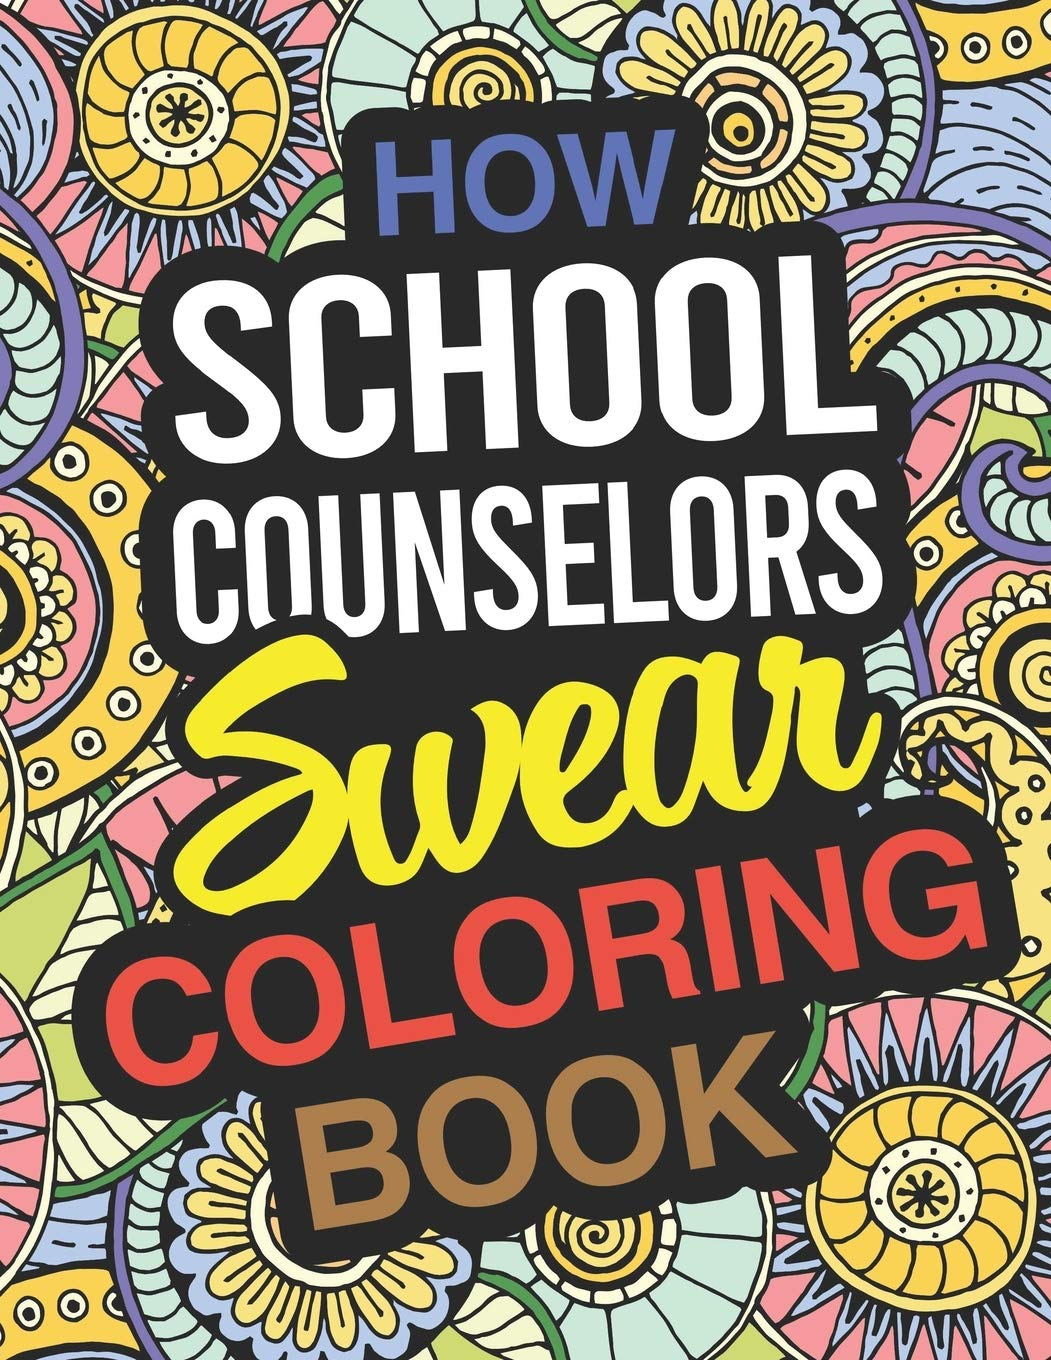 How School Counselors Swear Coloring Book: School Counselor